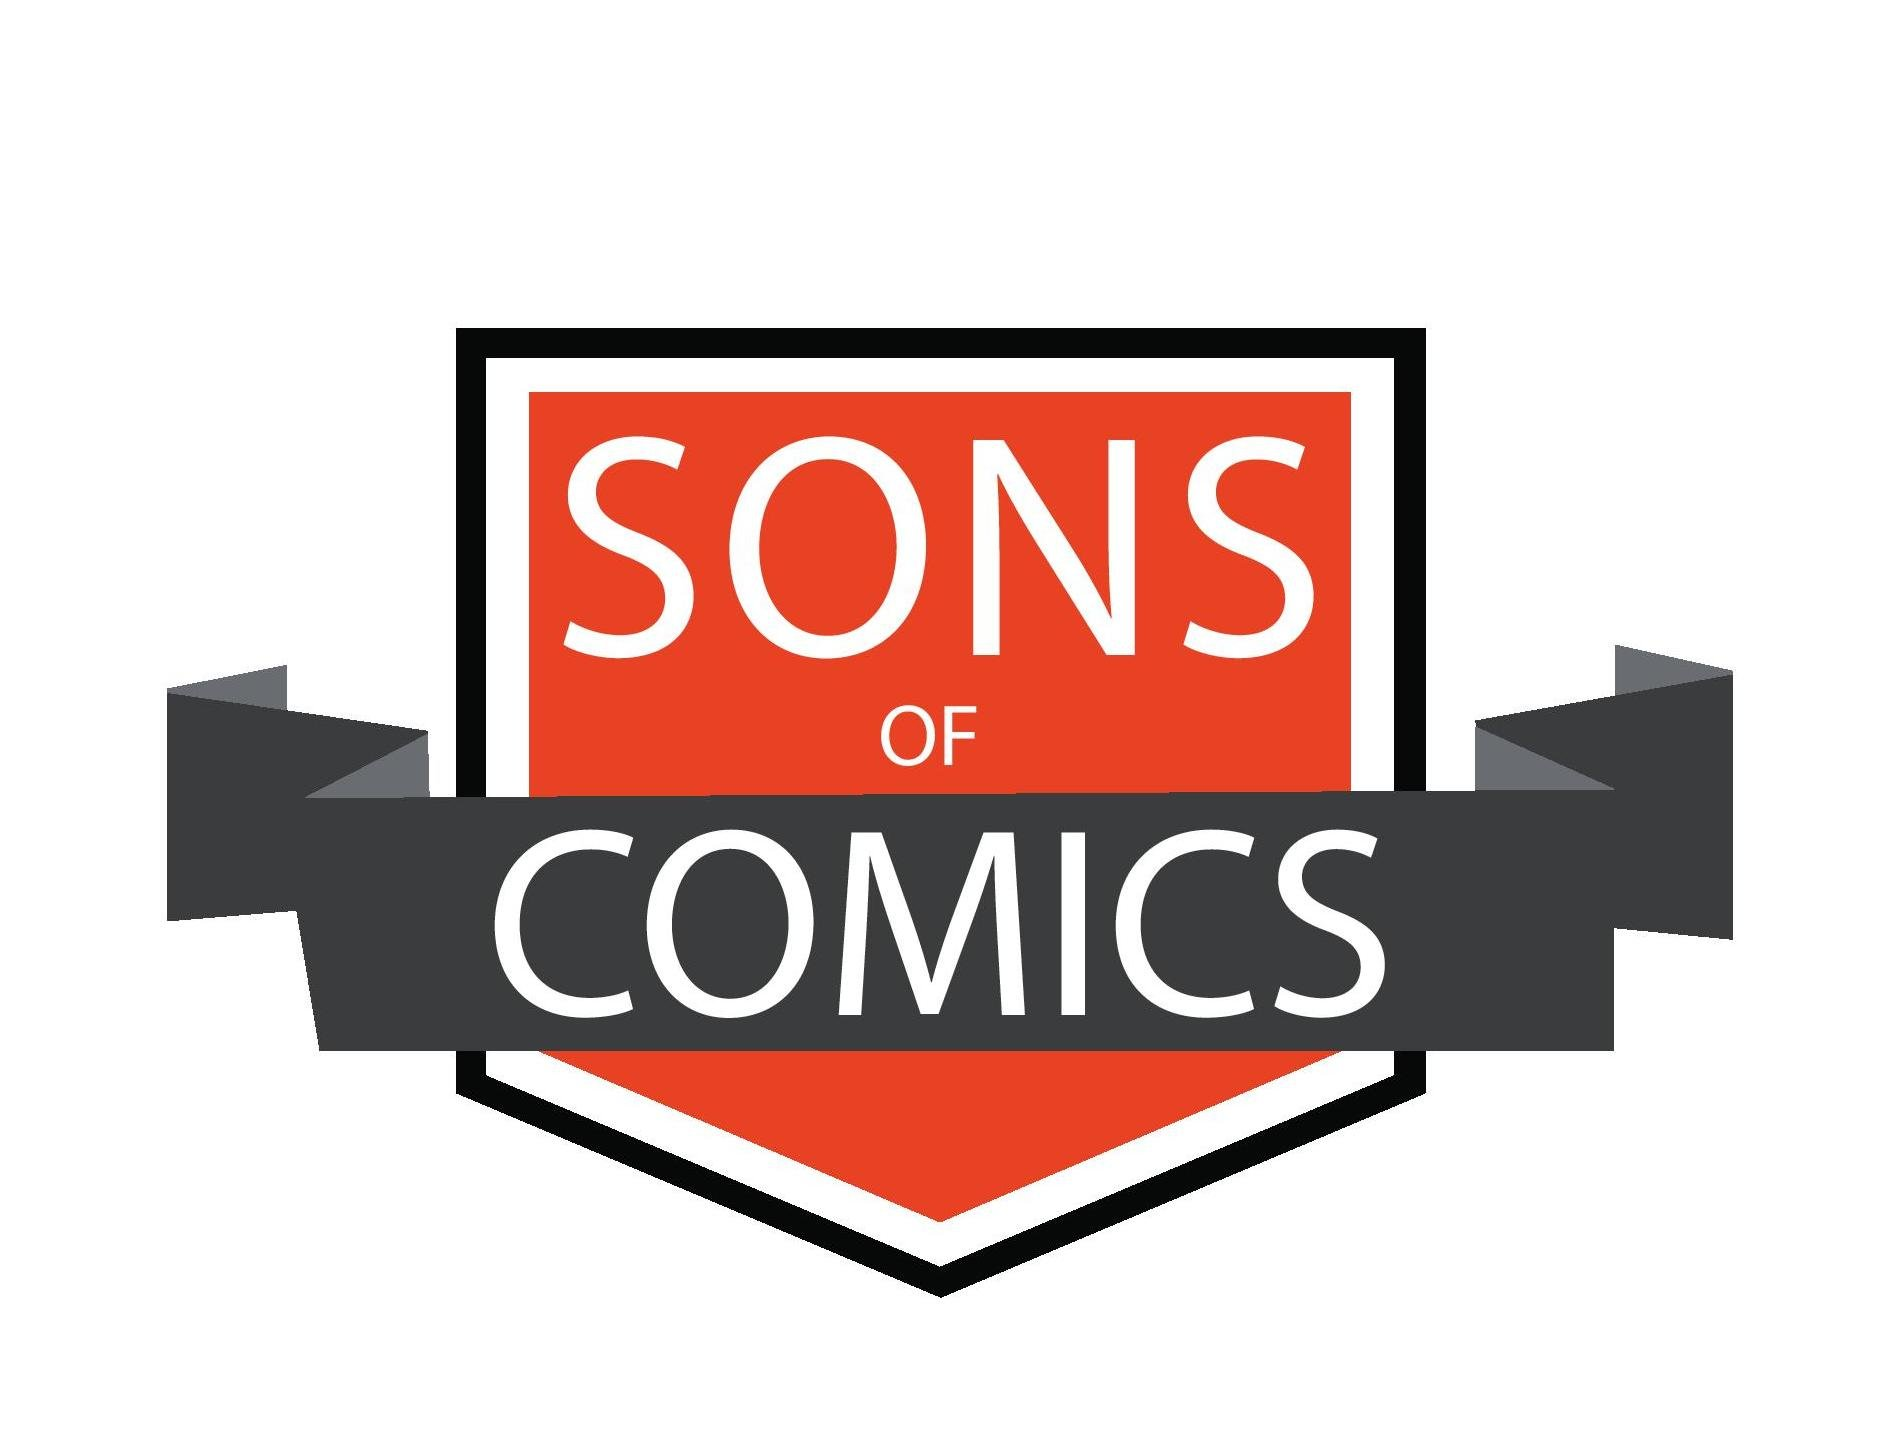 Sons of Comics Podcast